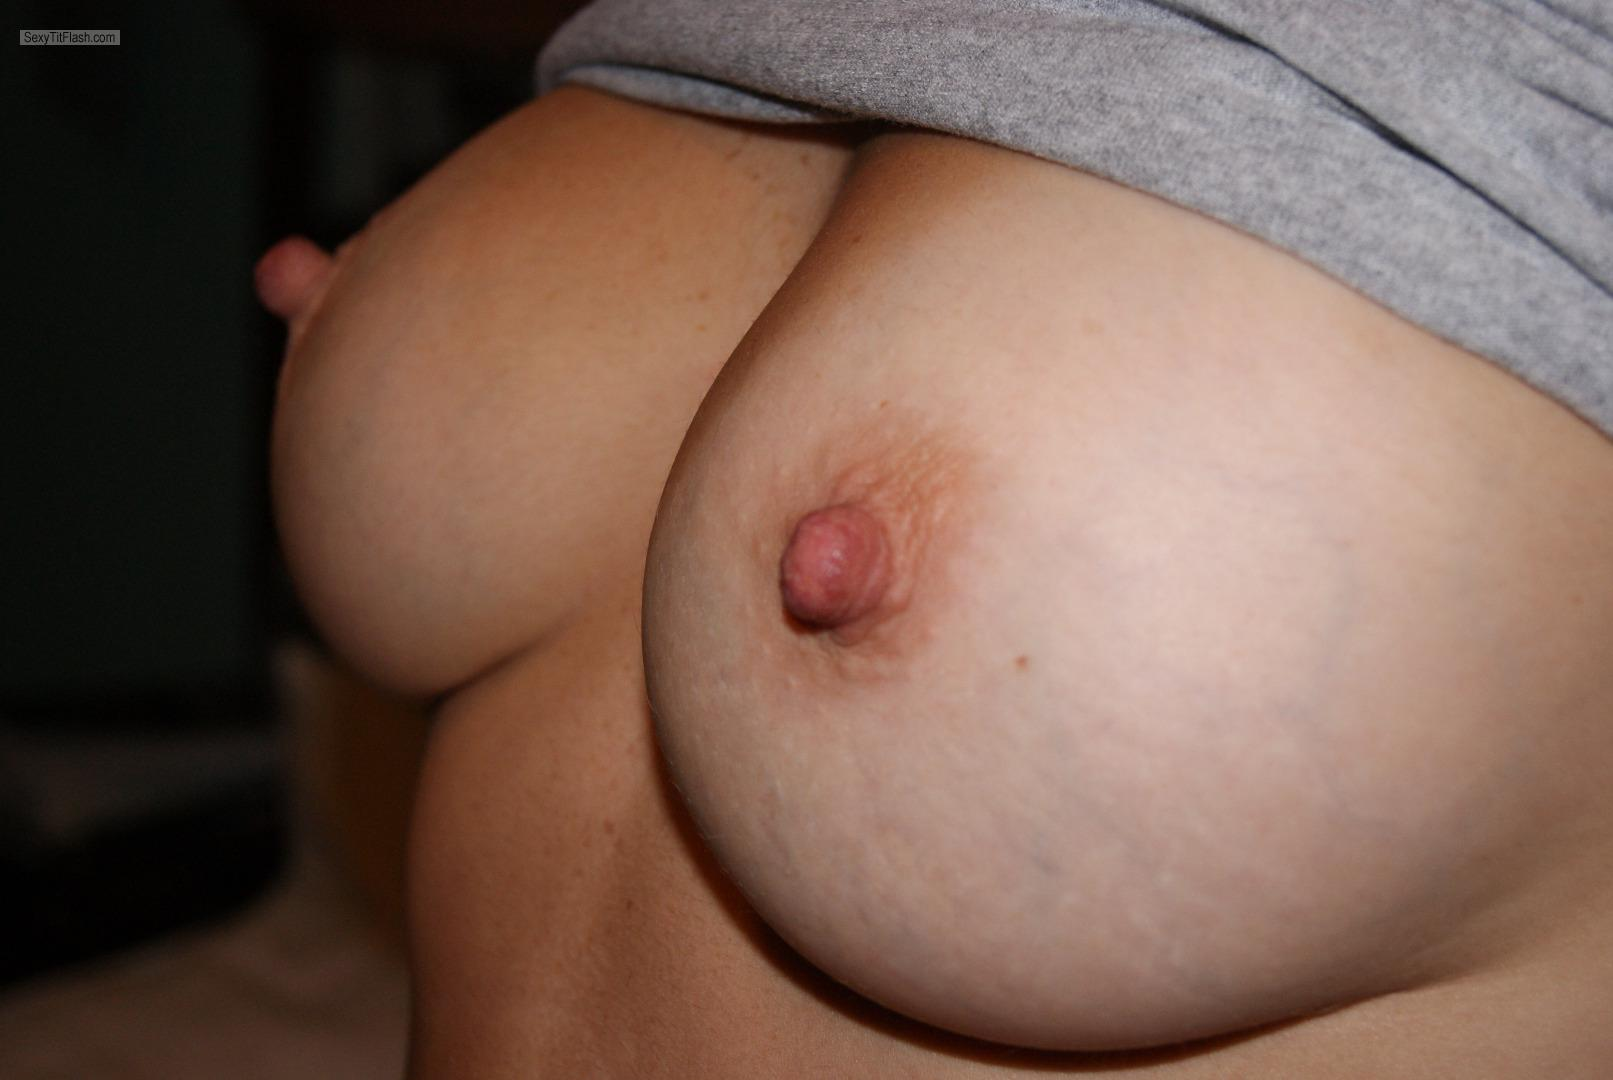 Tit Flash: Girlfriend's Medium Tits - Bella from Canada